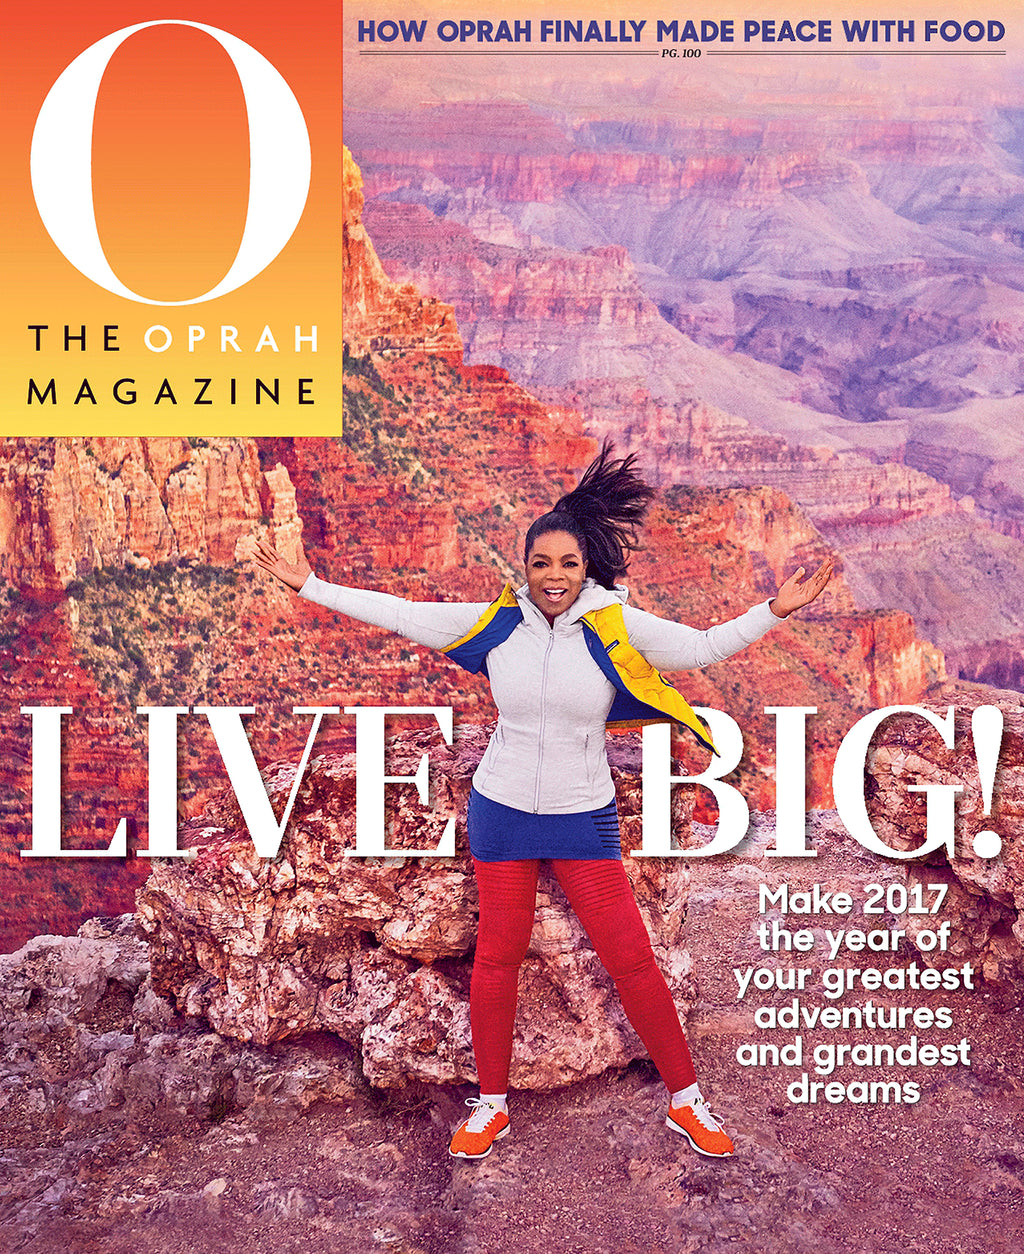 O Magazine Growth Potential: Hair where it was bare